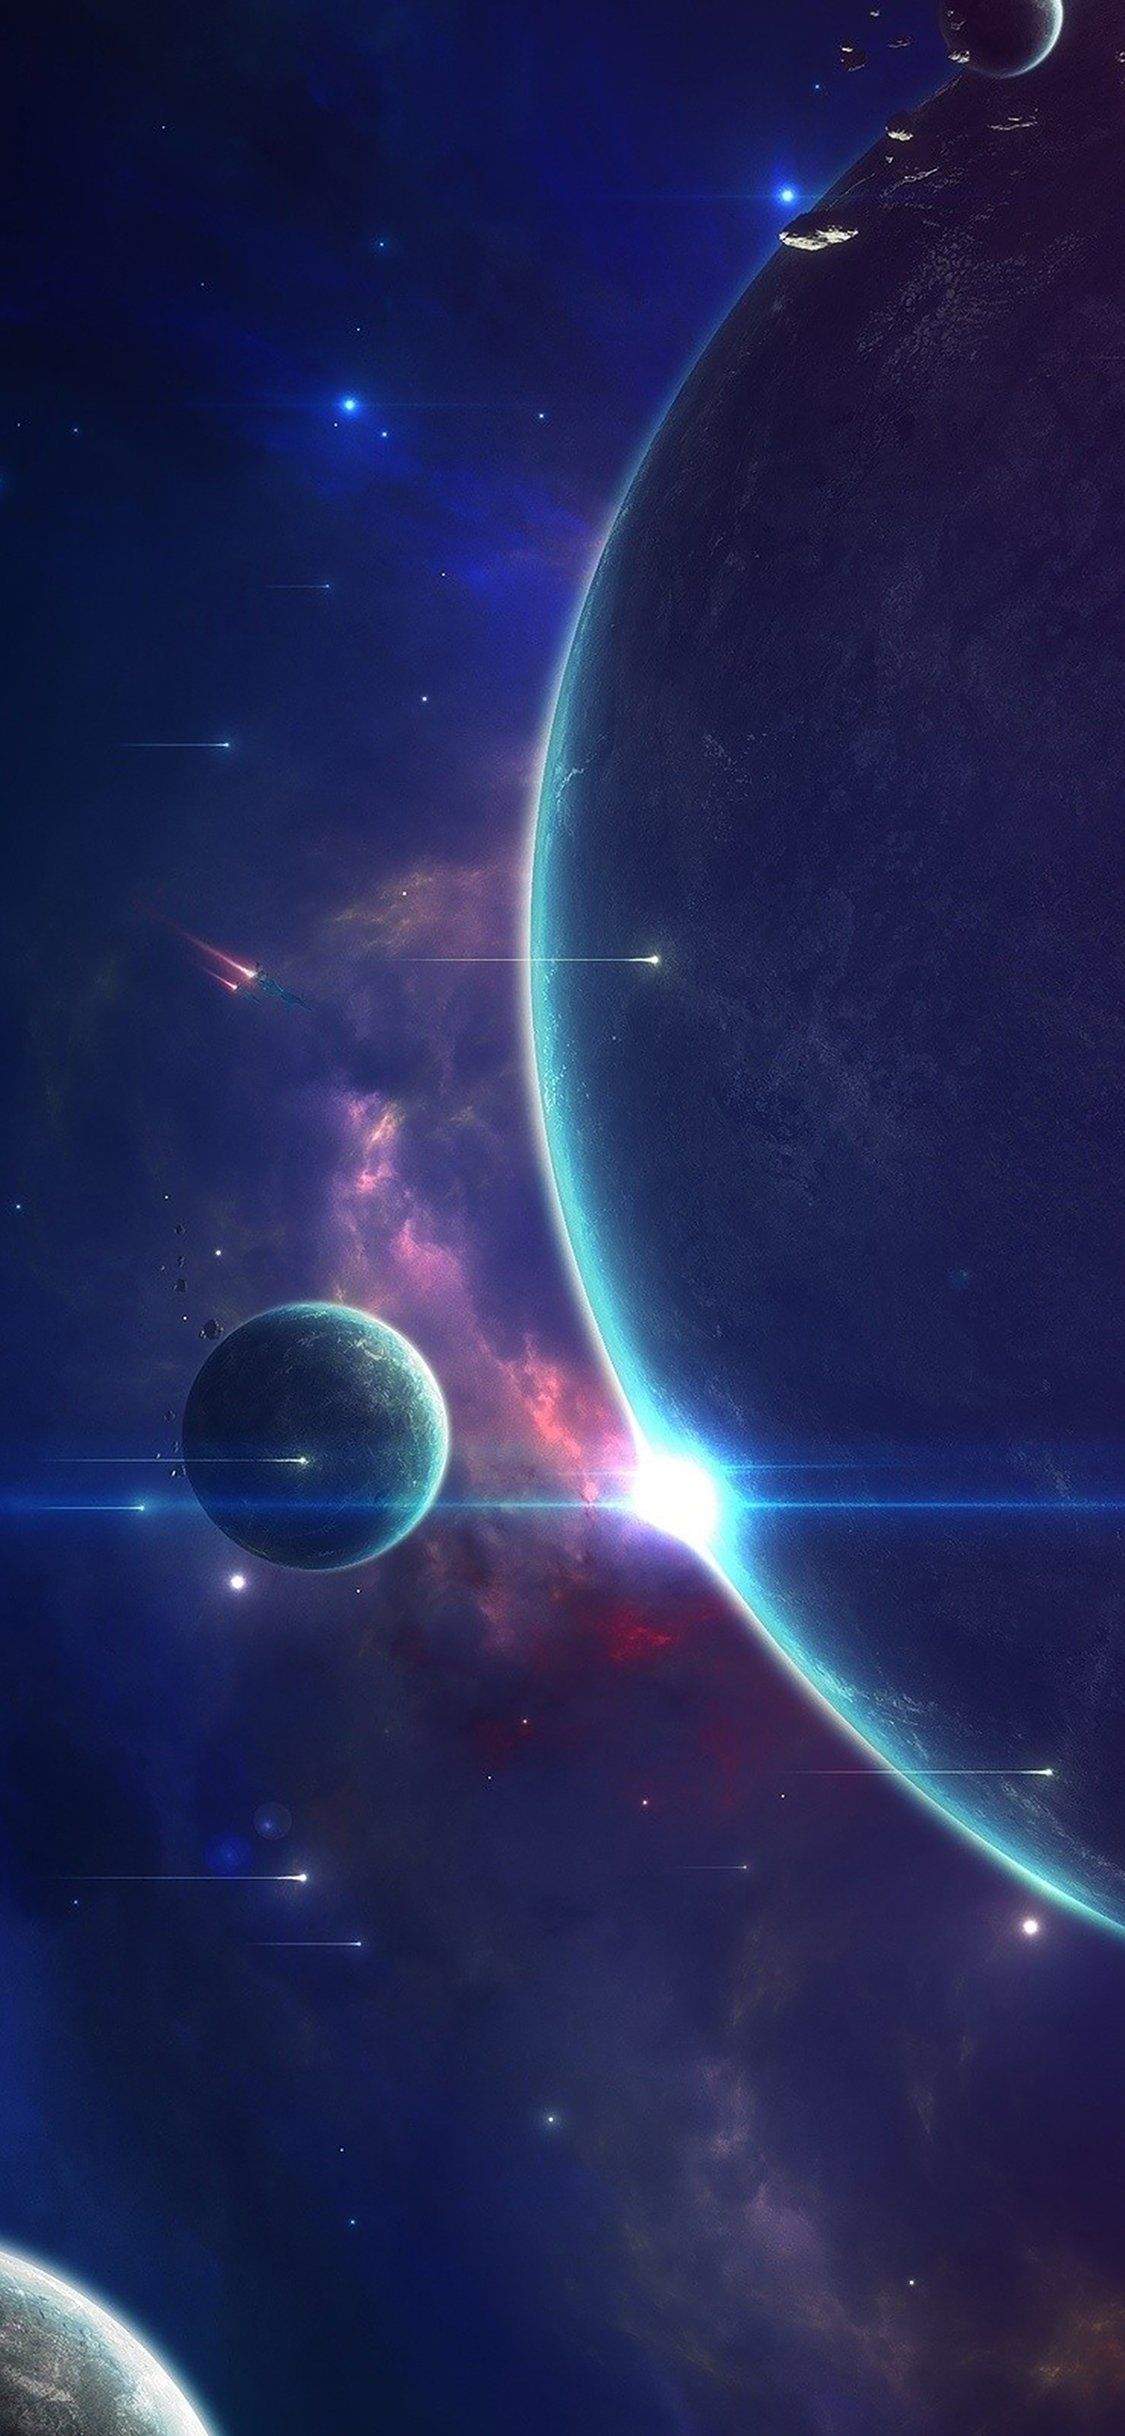 Colorful Space Wallpaper Iphone X Background Colorful Iphone Space Wallpaper Celeb In 2020 Wallpaper Space Samsung Wallpaper Android Aesthetic Iphone Wallpaper